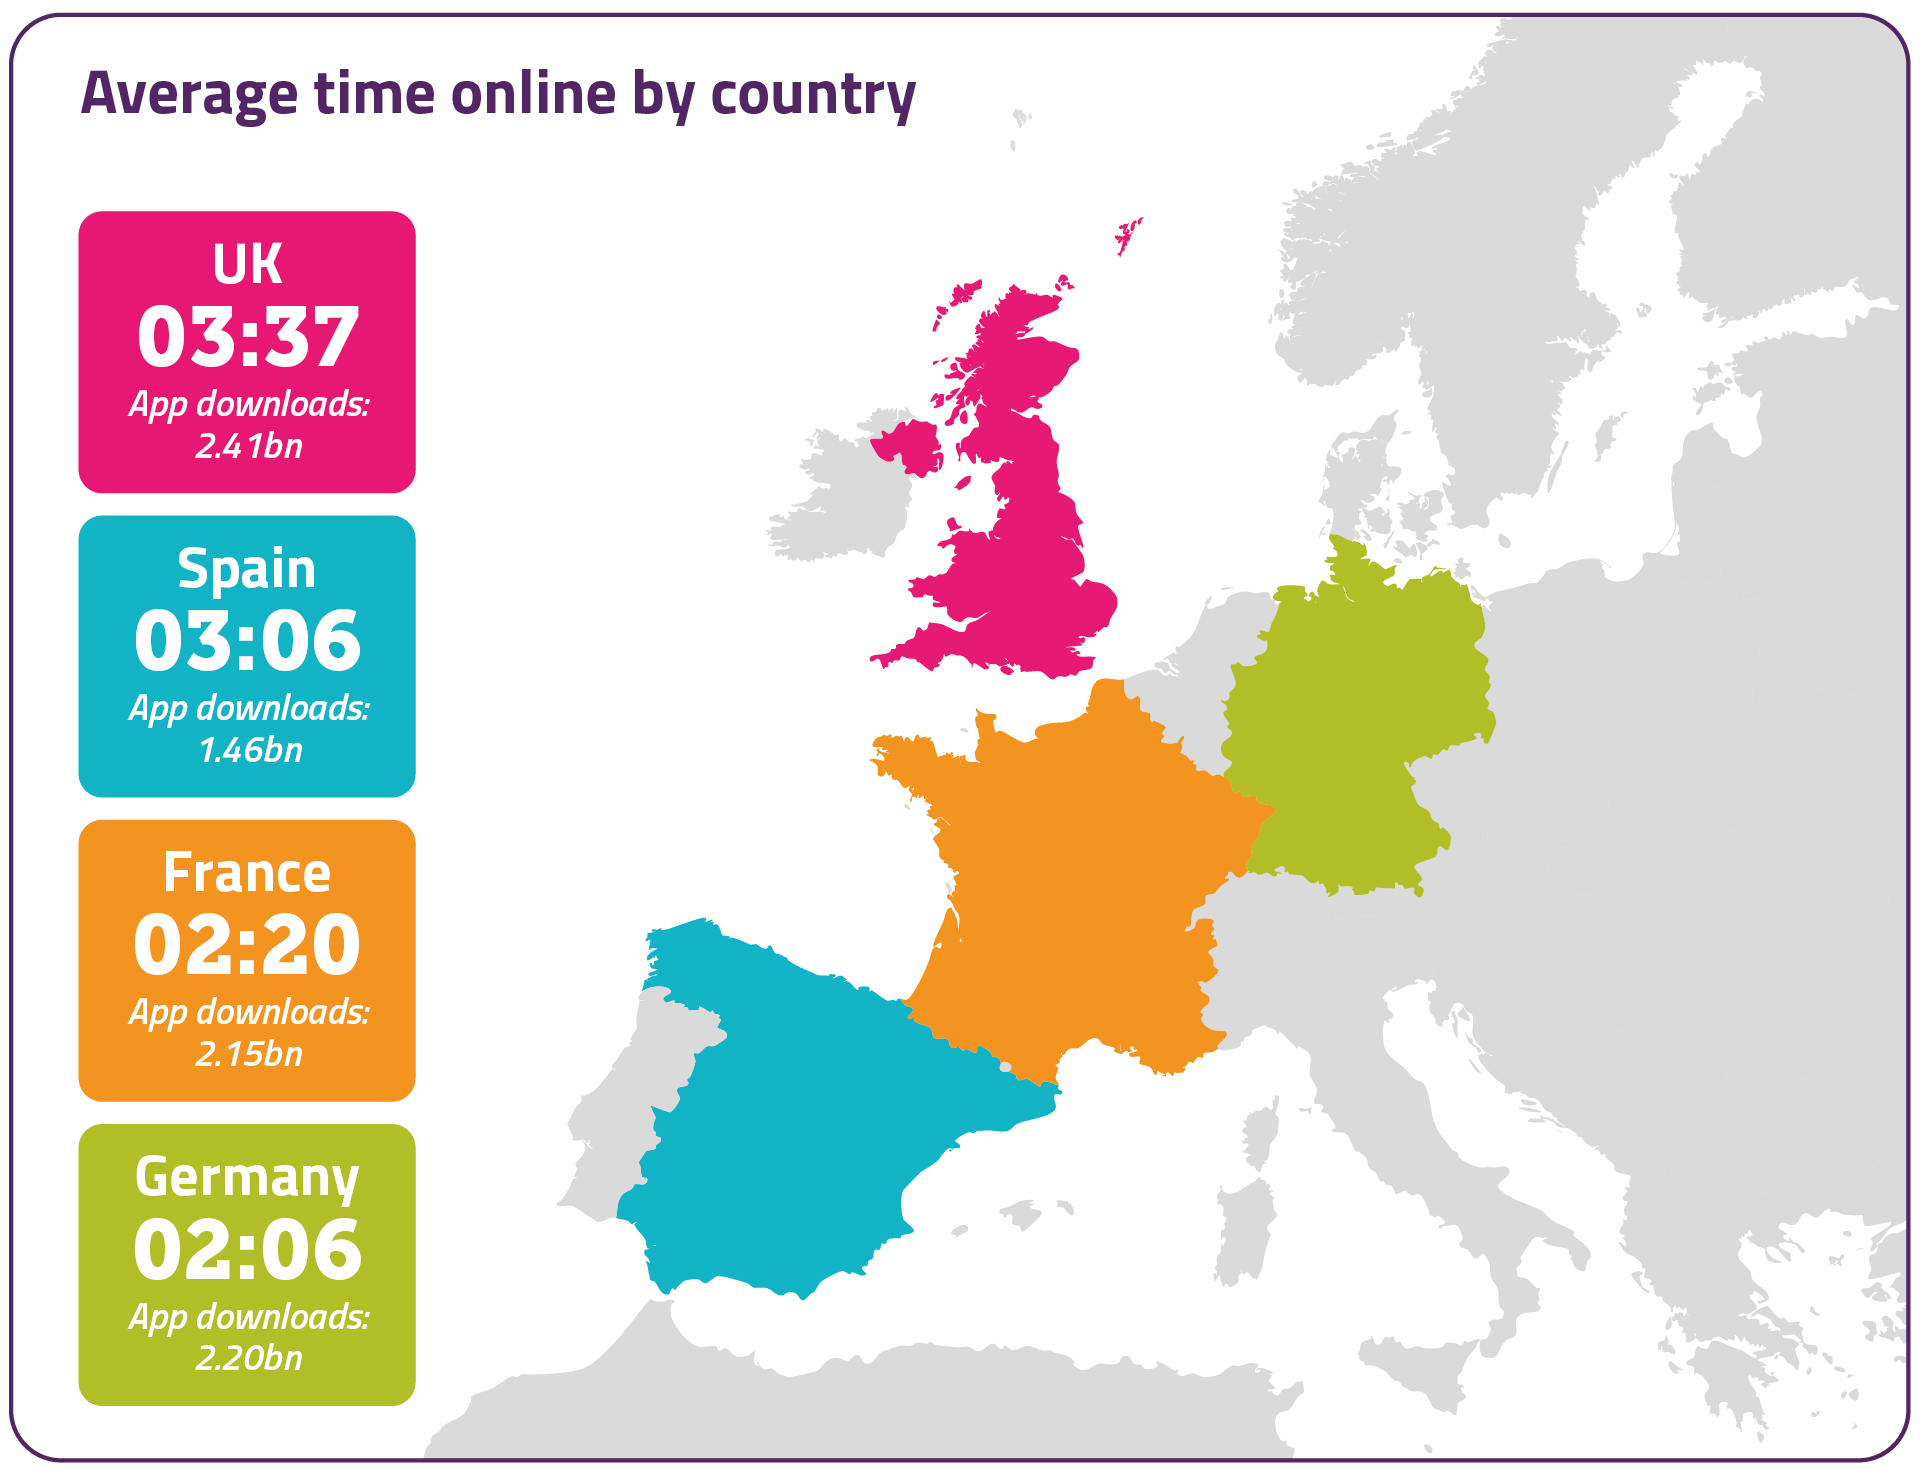 British adults spent nearly £2.45bn on, and in, mobile apps last year. We also spent more than an hour longer online than France (two hours 20 minutes) and Germany (two hours six minutes), and 30 minutes more than Spain (three hours and six minutes).